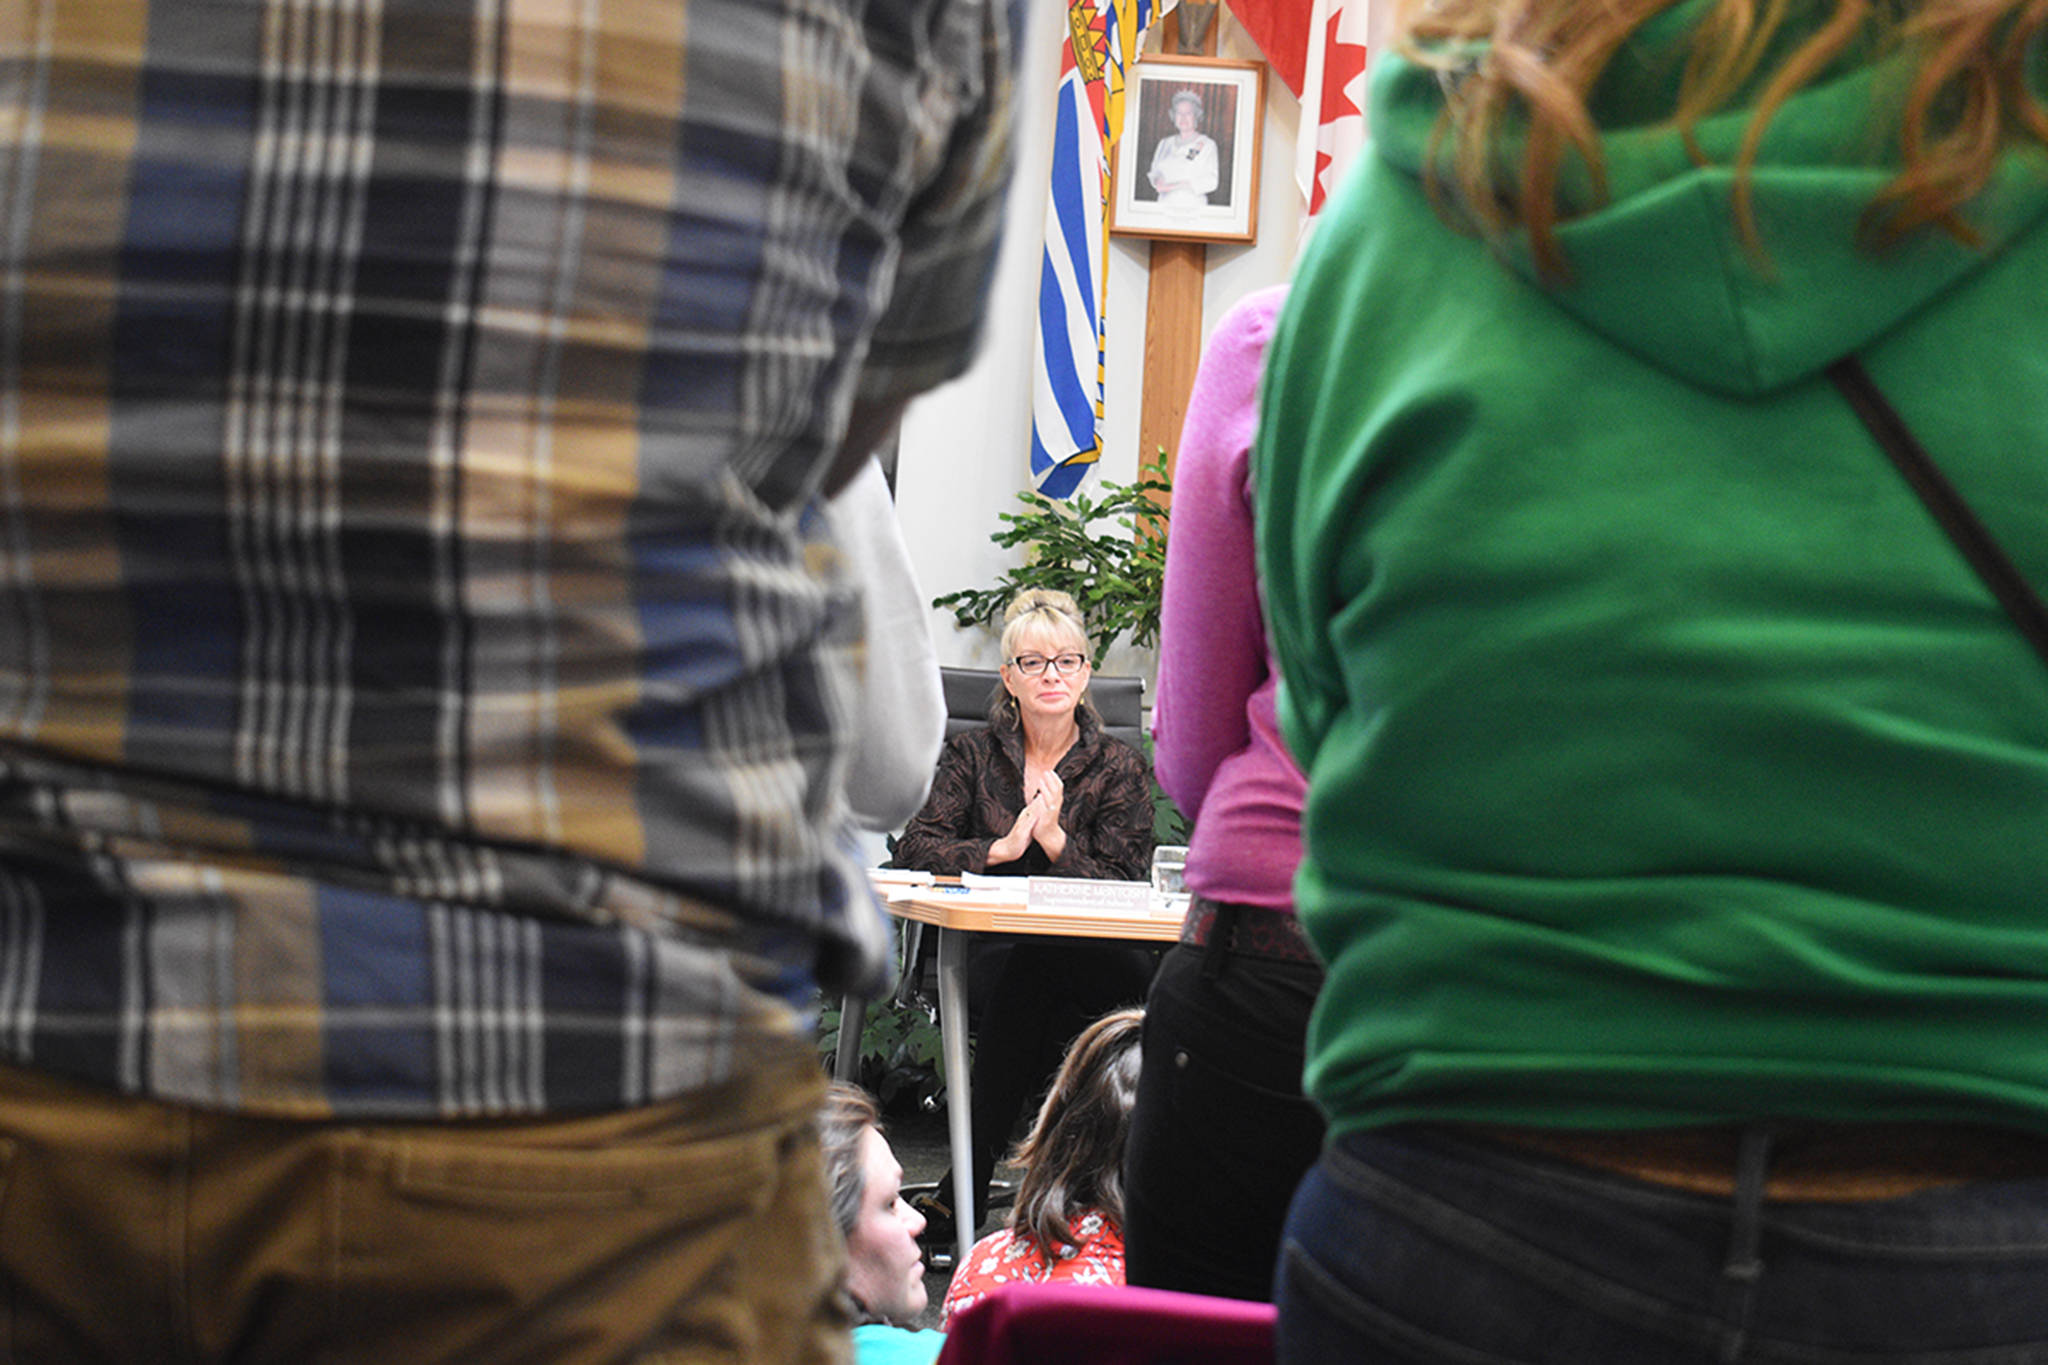 Parents and community members stand and applaud after an emotional plea for the district to not reassign three popular administrators as superintendent Katherine McIntosh looks on at the crowd on June 19. (Brittany Gervais/Terrace Standard)